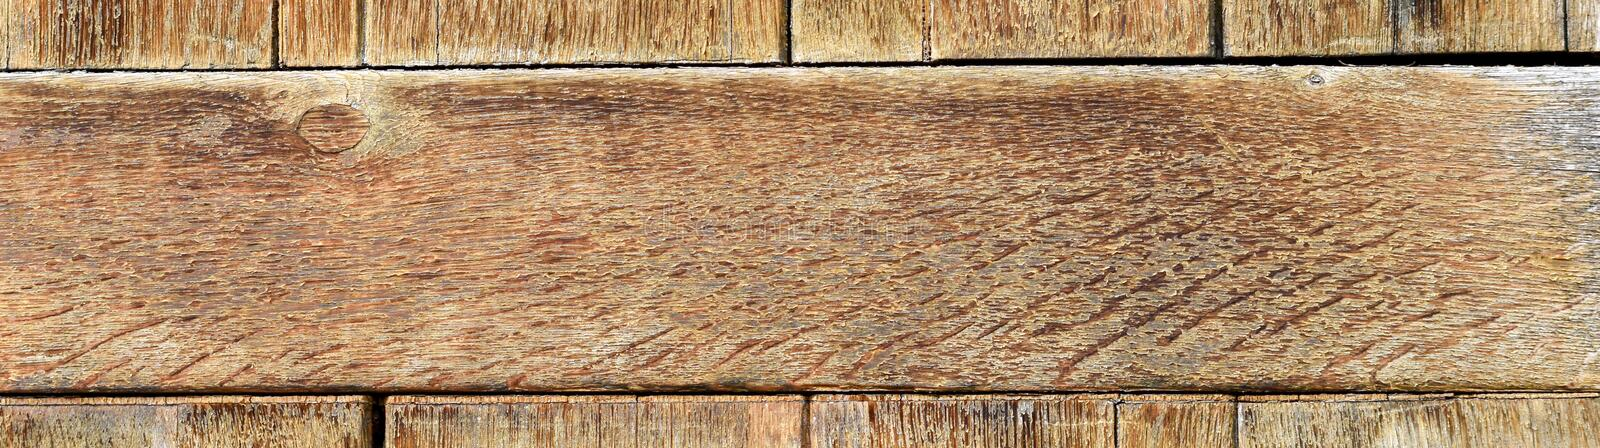 Weathered wooden texture for interior or exterior design solutions. Weathered wooden wall texture for industrial interior or exterior design solutions royalty free stock image